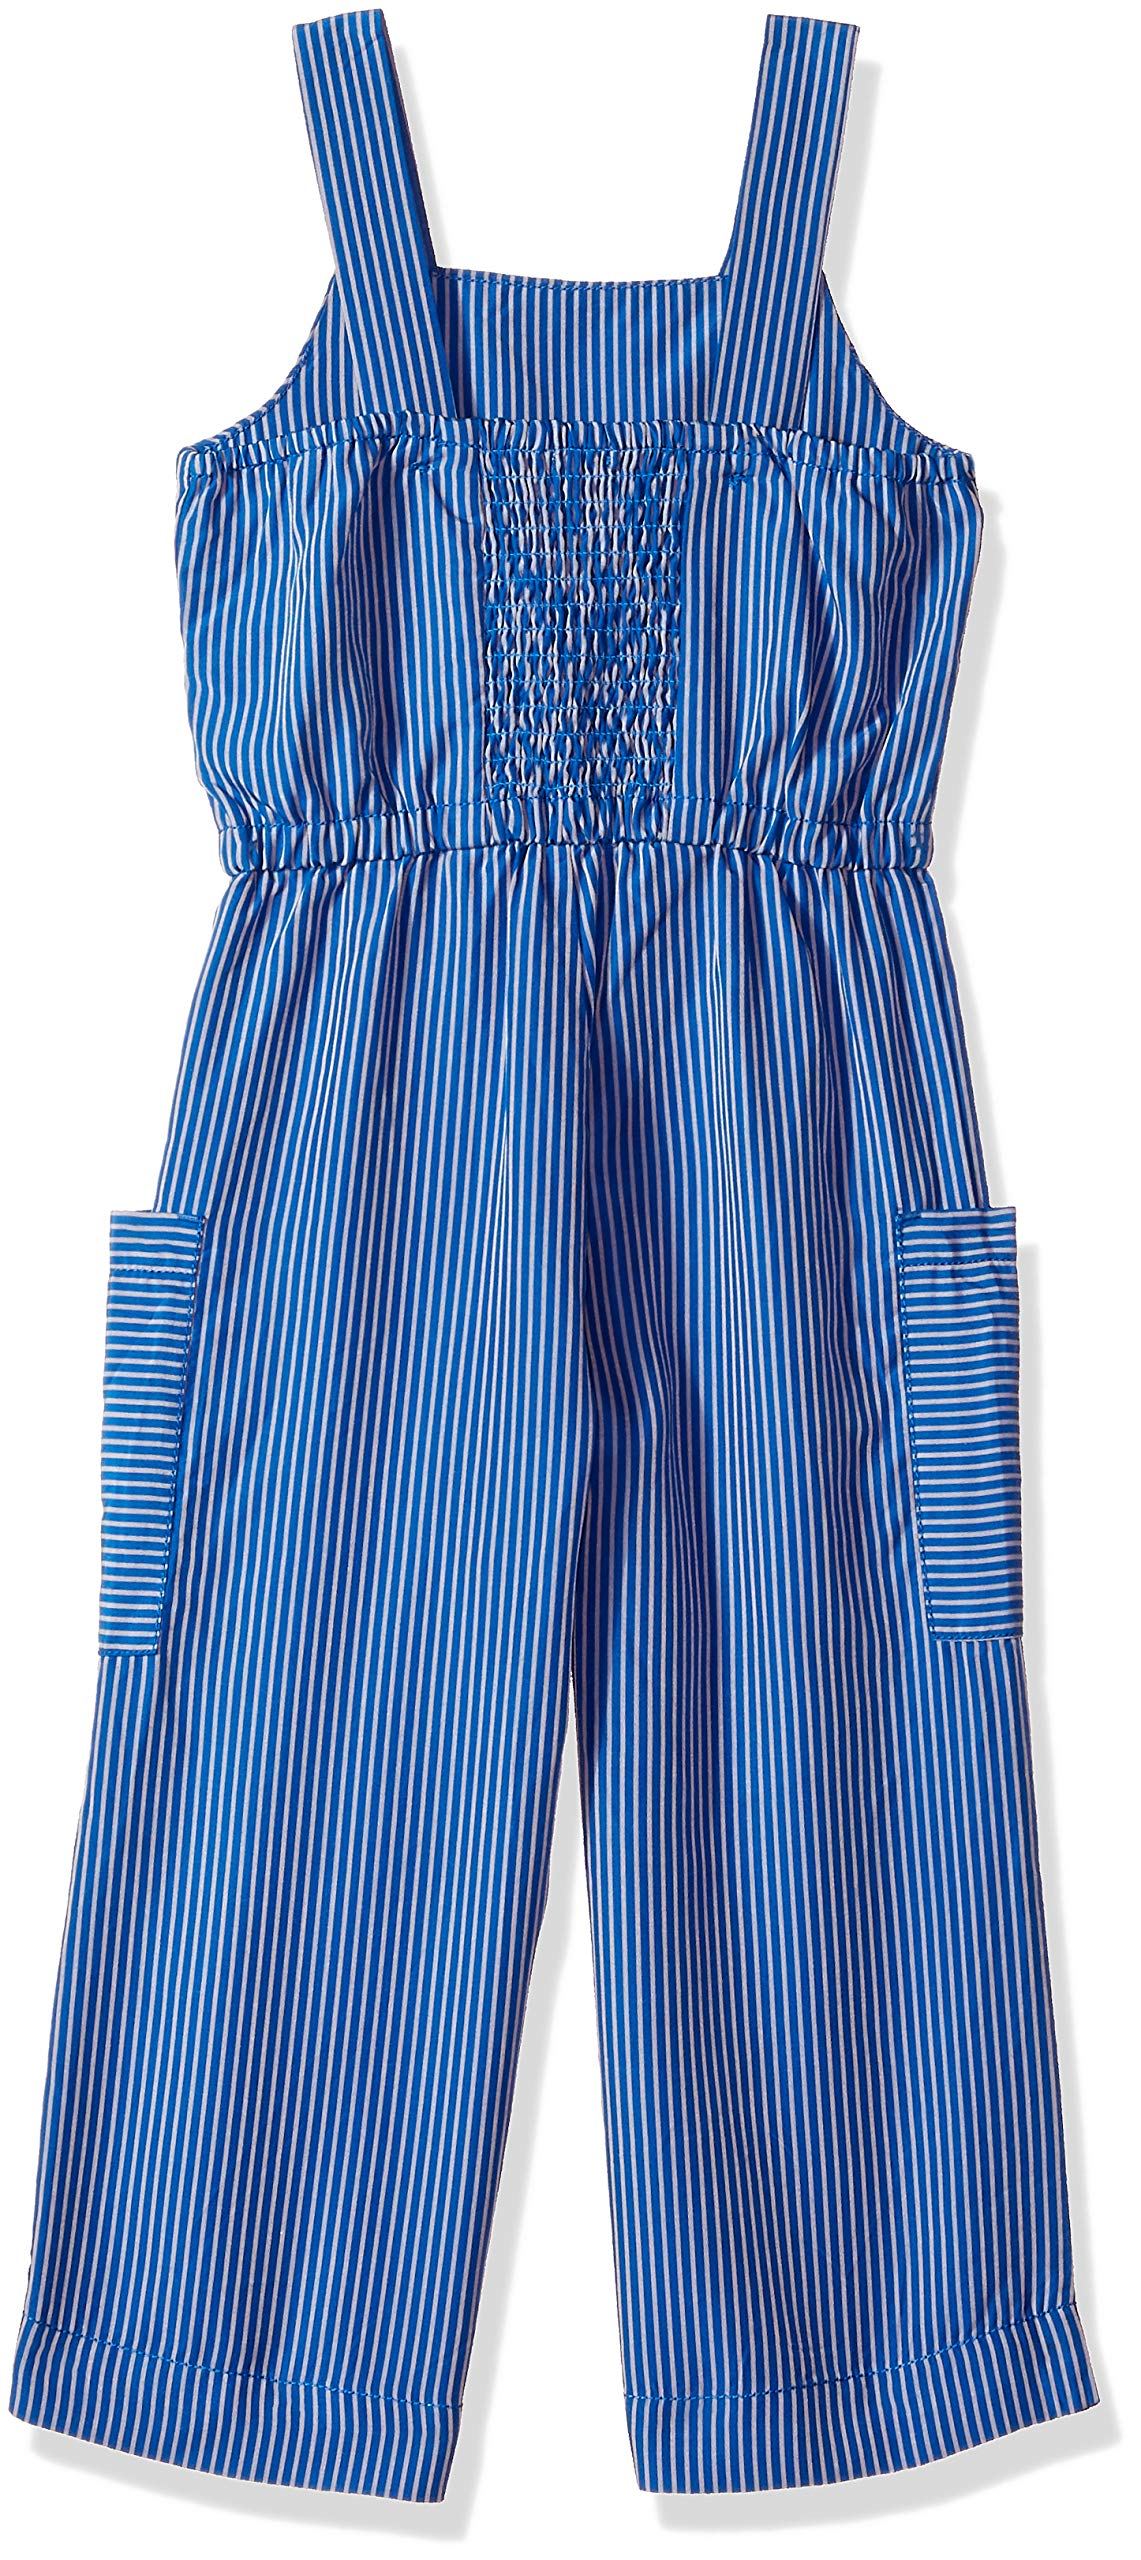 Gymboree Girls' Big Casual Knit Romper, Electric Blue, 5 by Gymboree (Image #2)